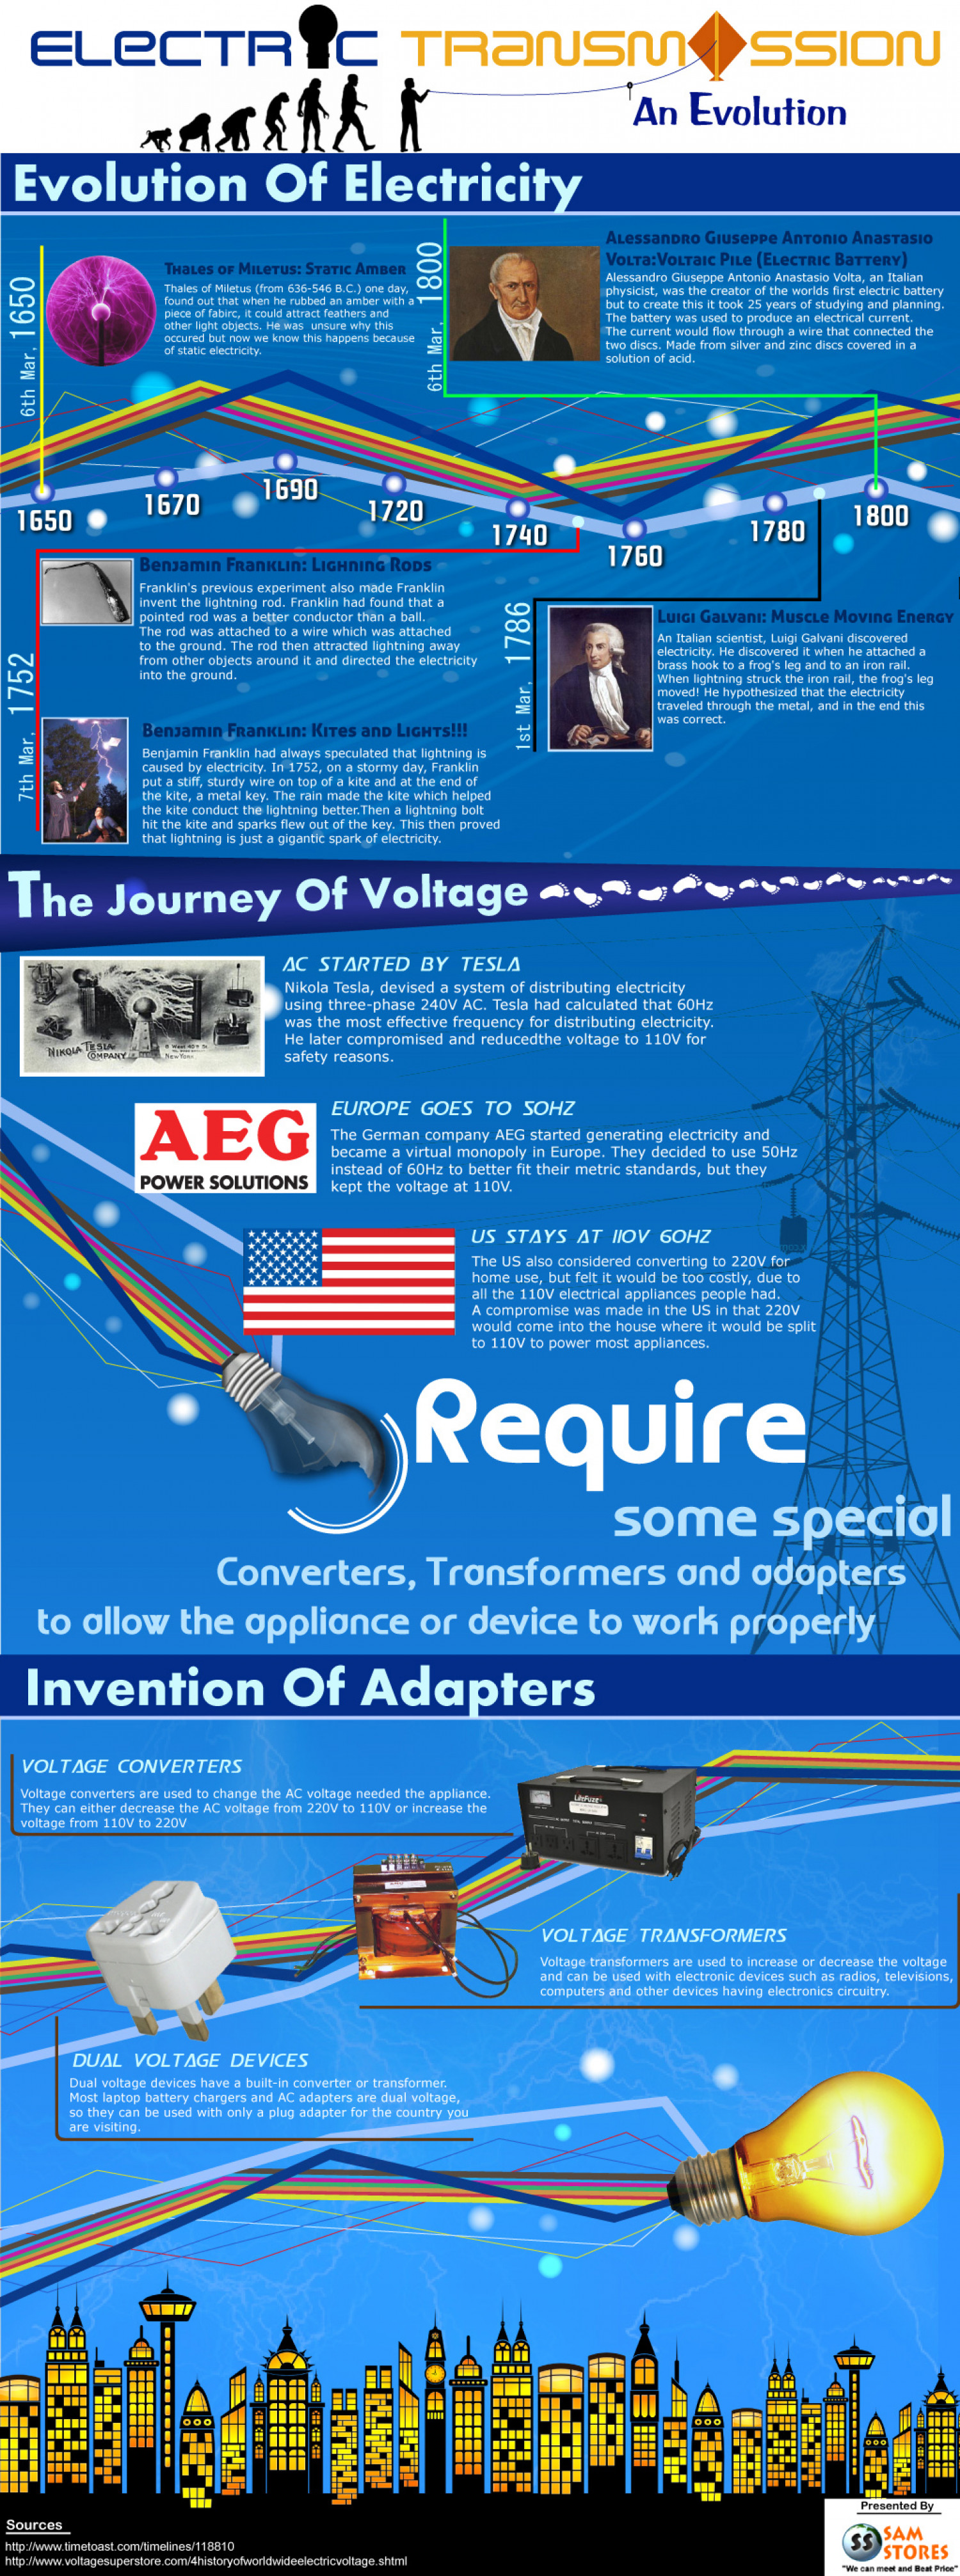 Electric Transmission – The Invention of Electricity and Evolution of Voltage Infographic